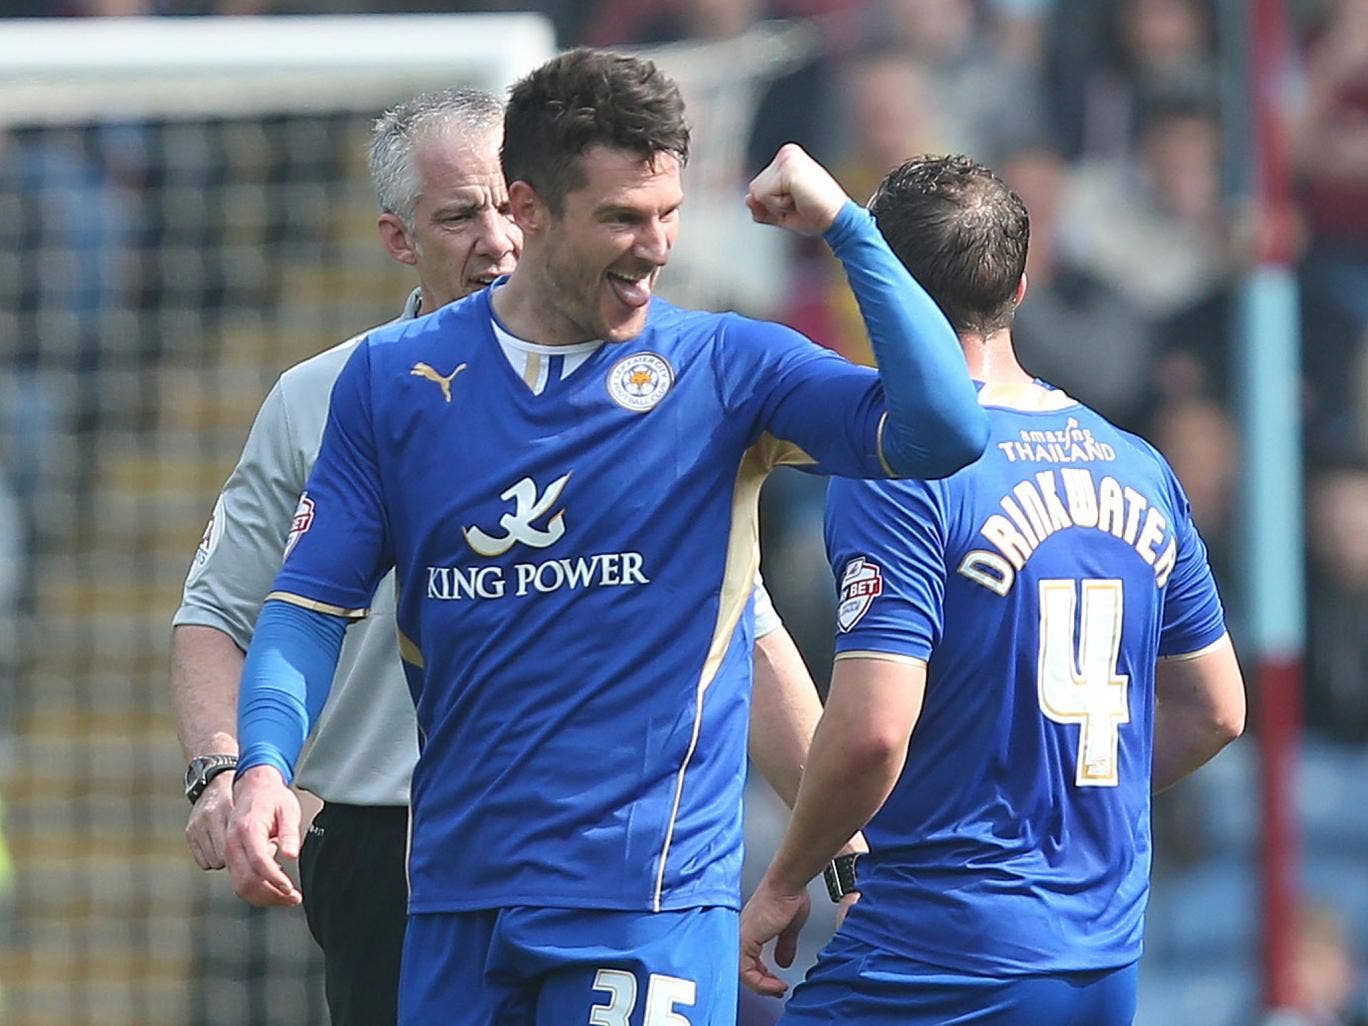 David Nugent scored Leicester's opener in the 2-0 win over Burnley